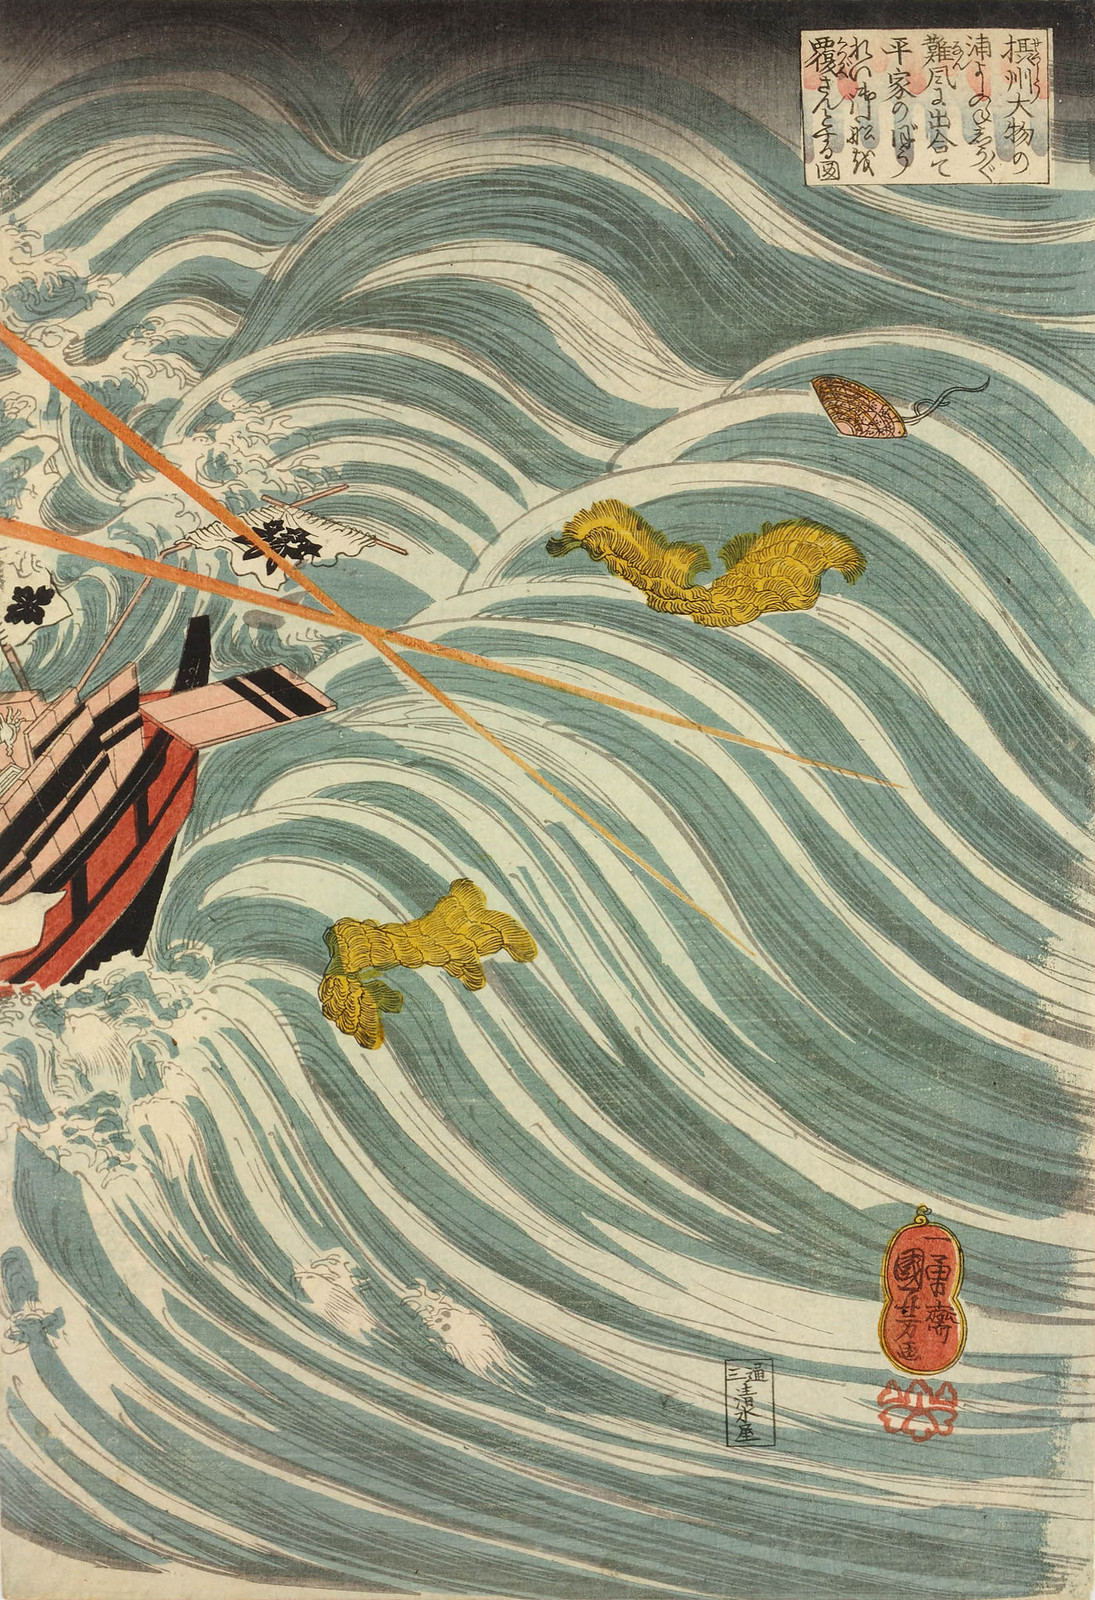 Utagawa Kuniyoshi - The Taira ghosts arising from the sea (left) to attack Yoshitsune's ship (centre), with some warriors in the water, 19th C (right panel)